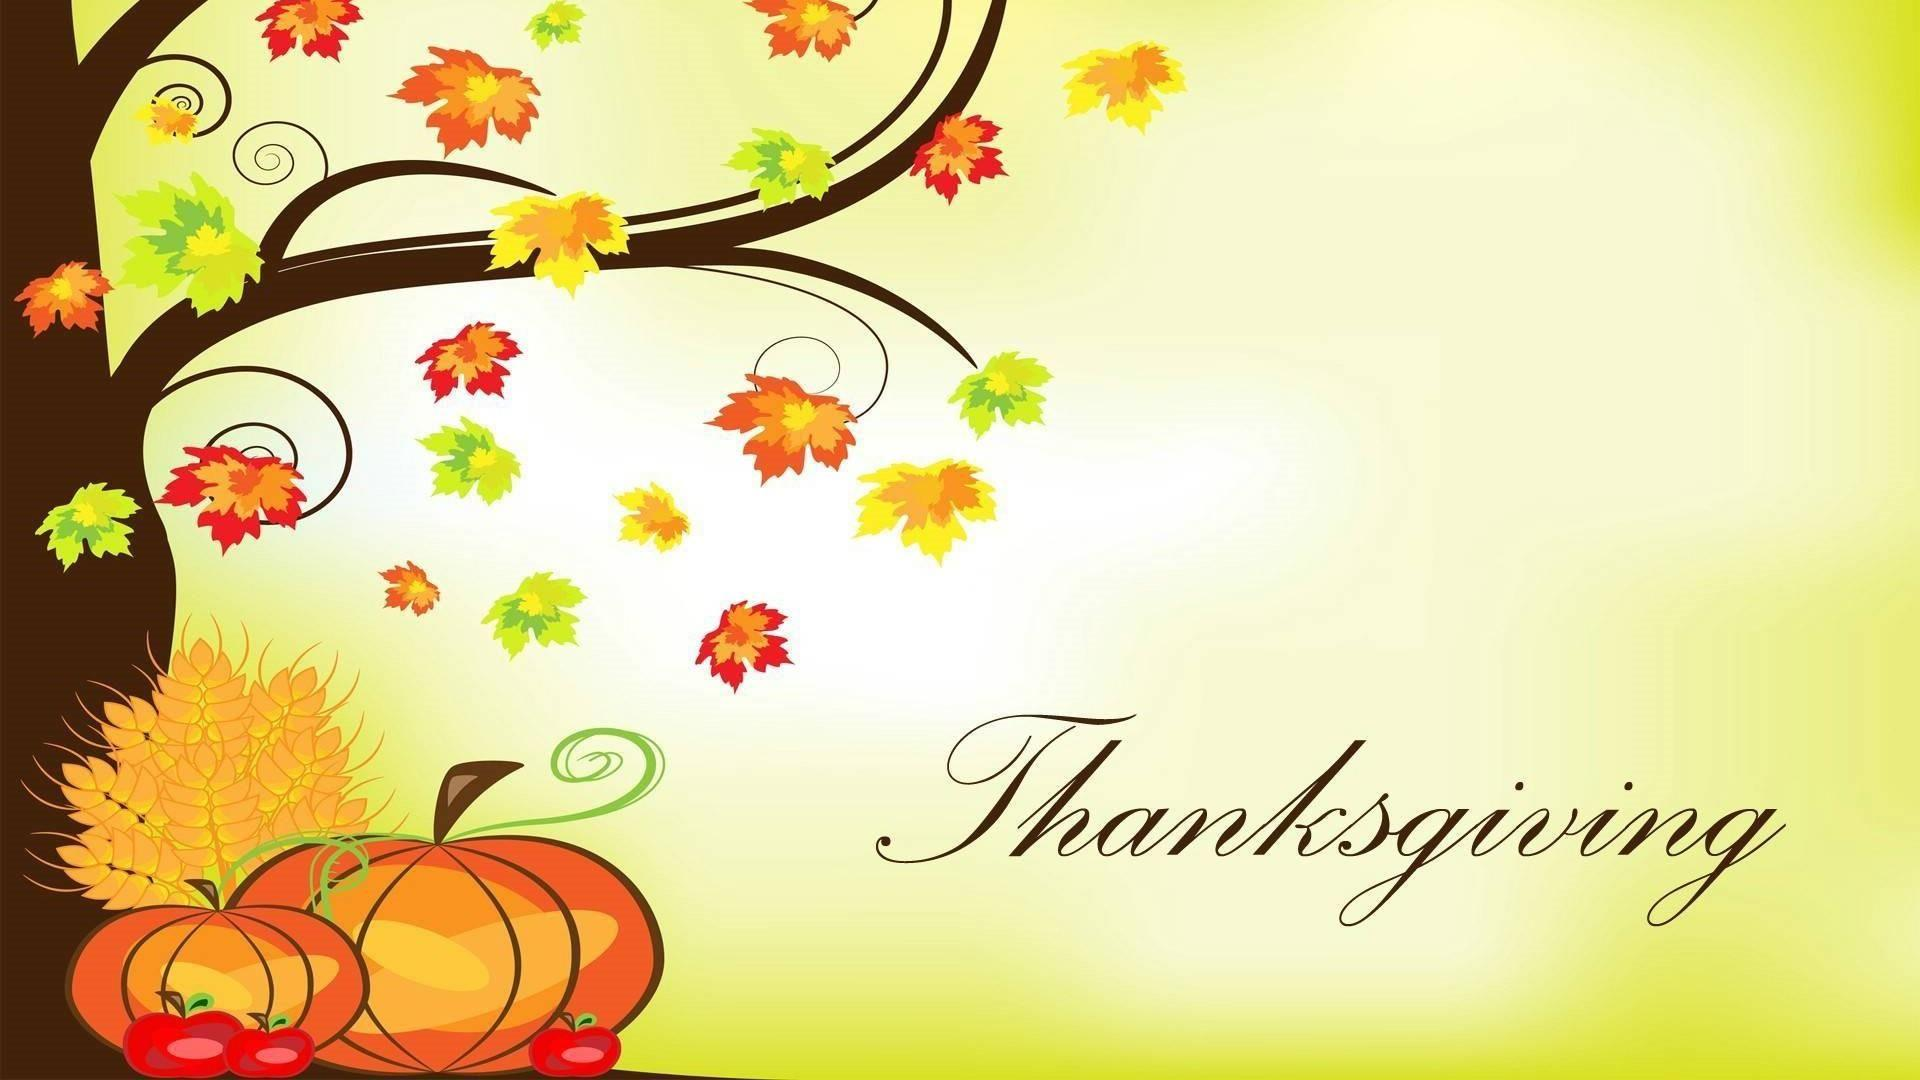 Thanksgiving Day Wallpaper | Wallpaper Studio 10 | Tens of thousands ...